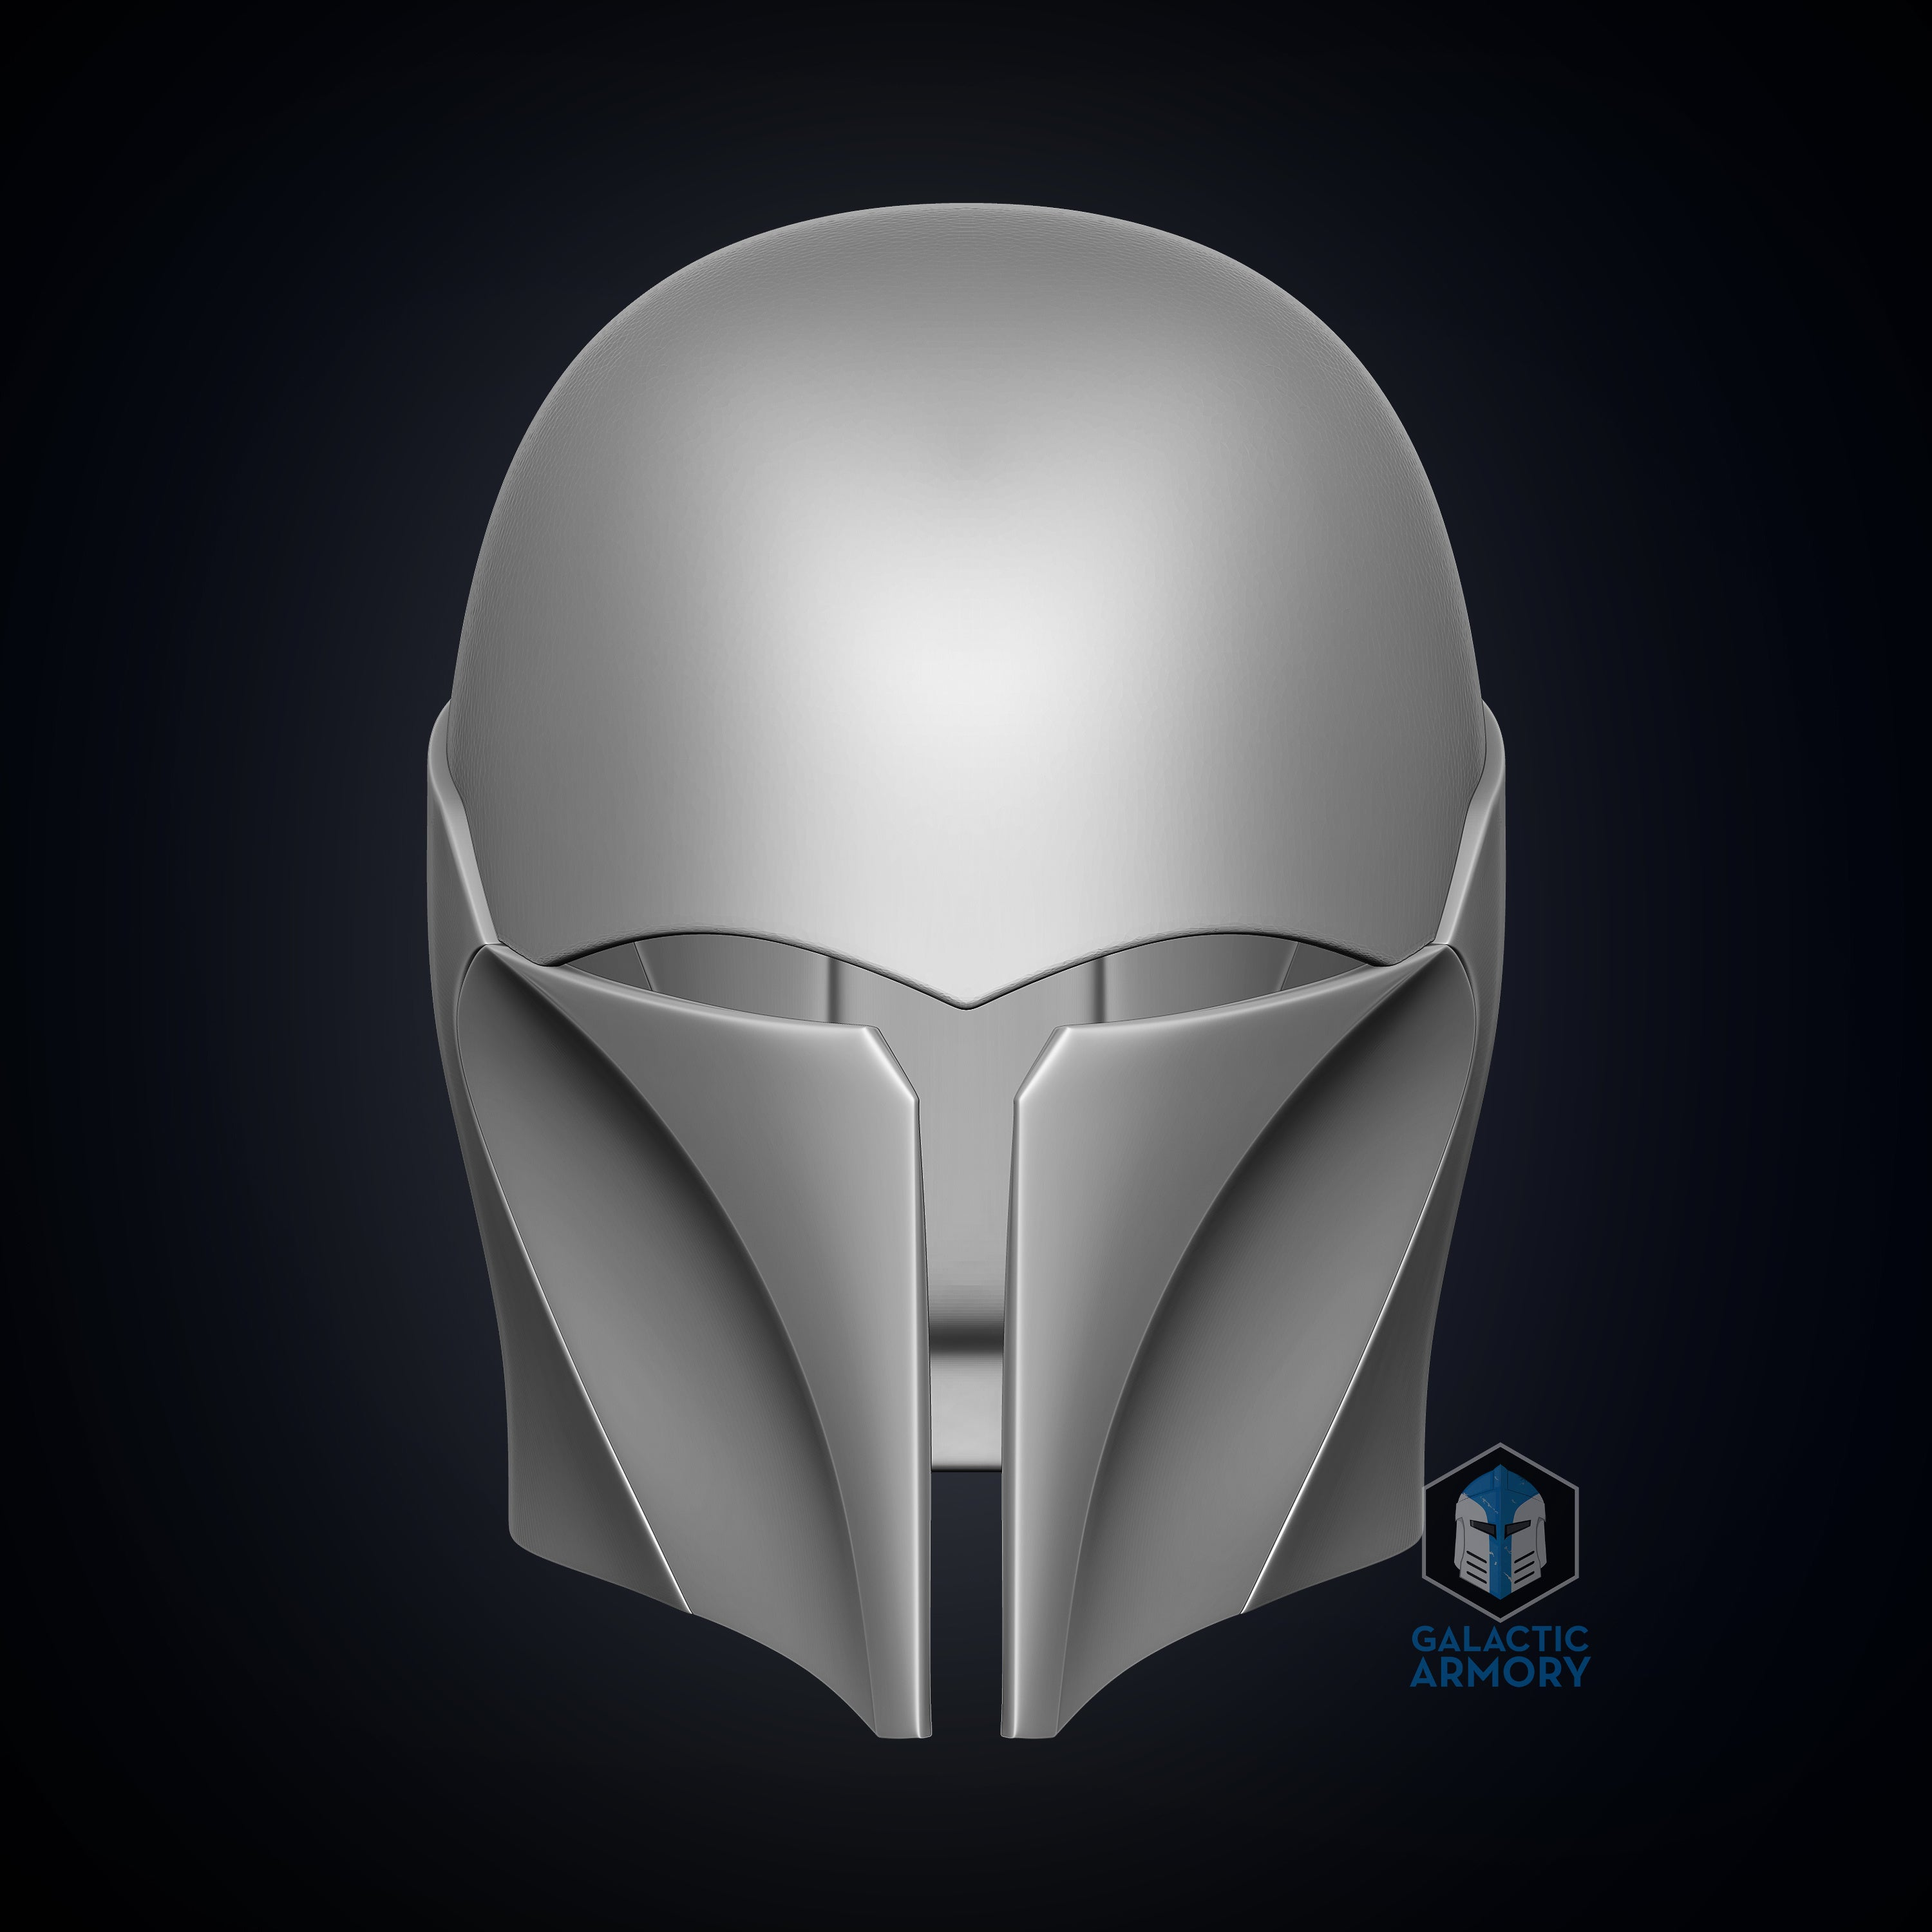 Female Deathwatch Helmet - 3D Print Files - The Galactic Armory